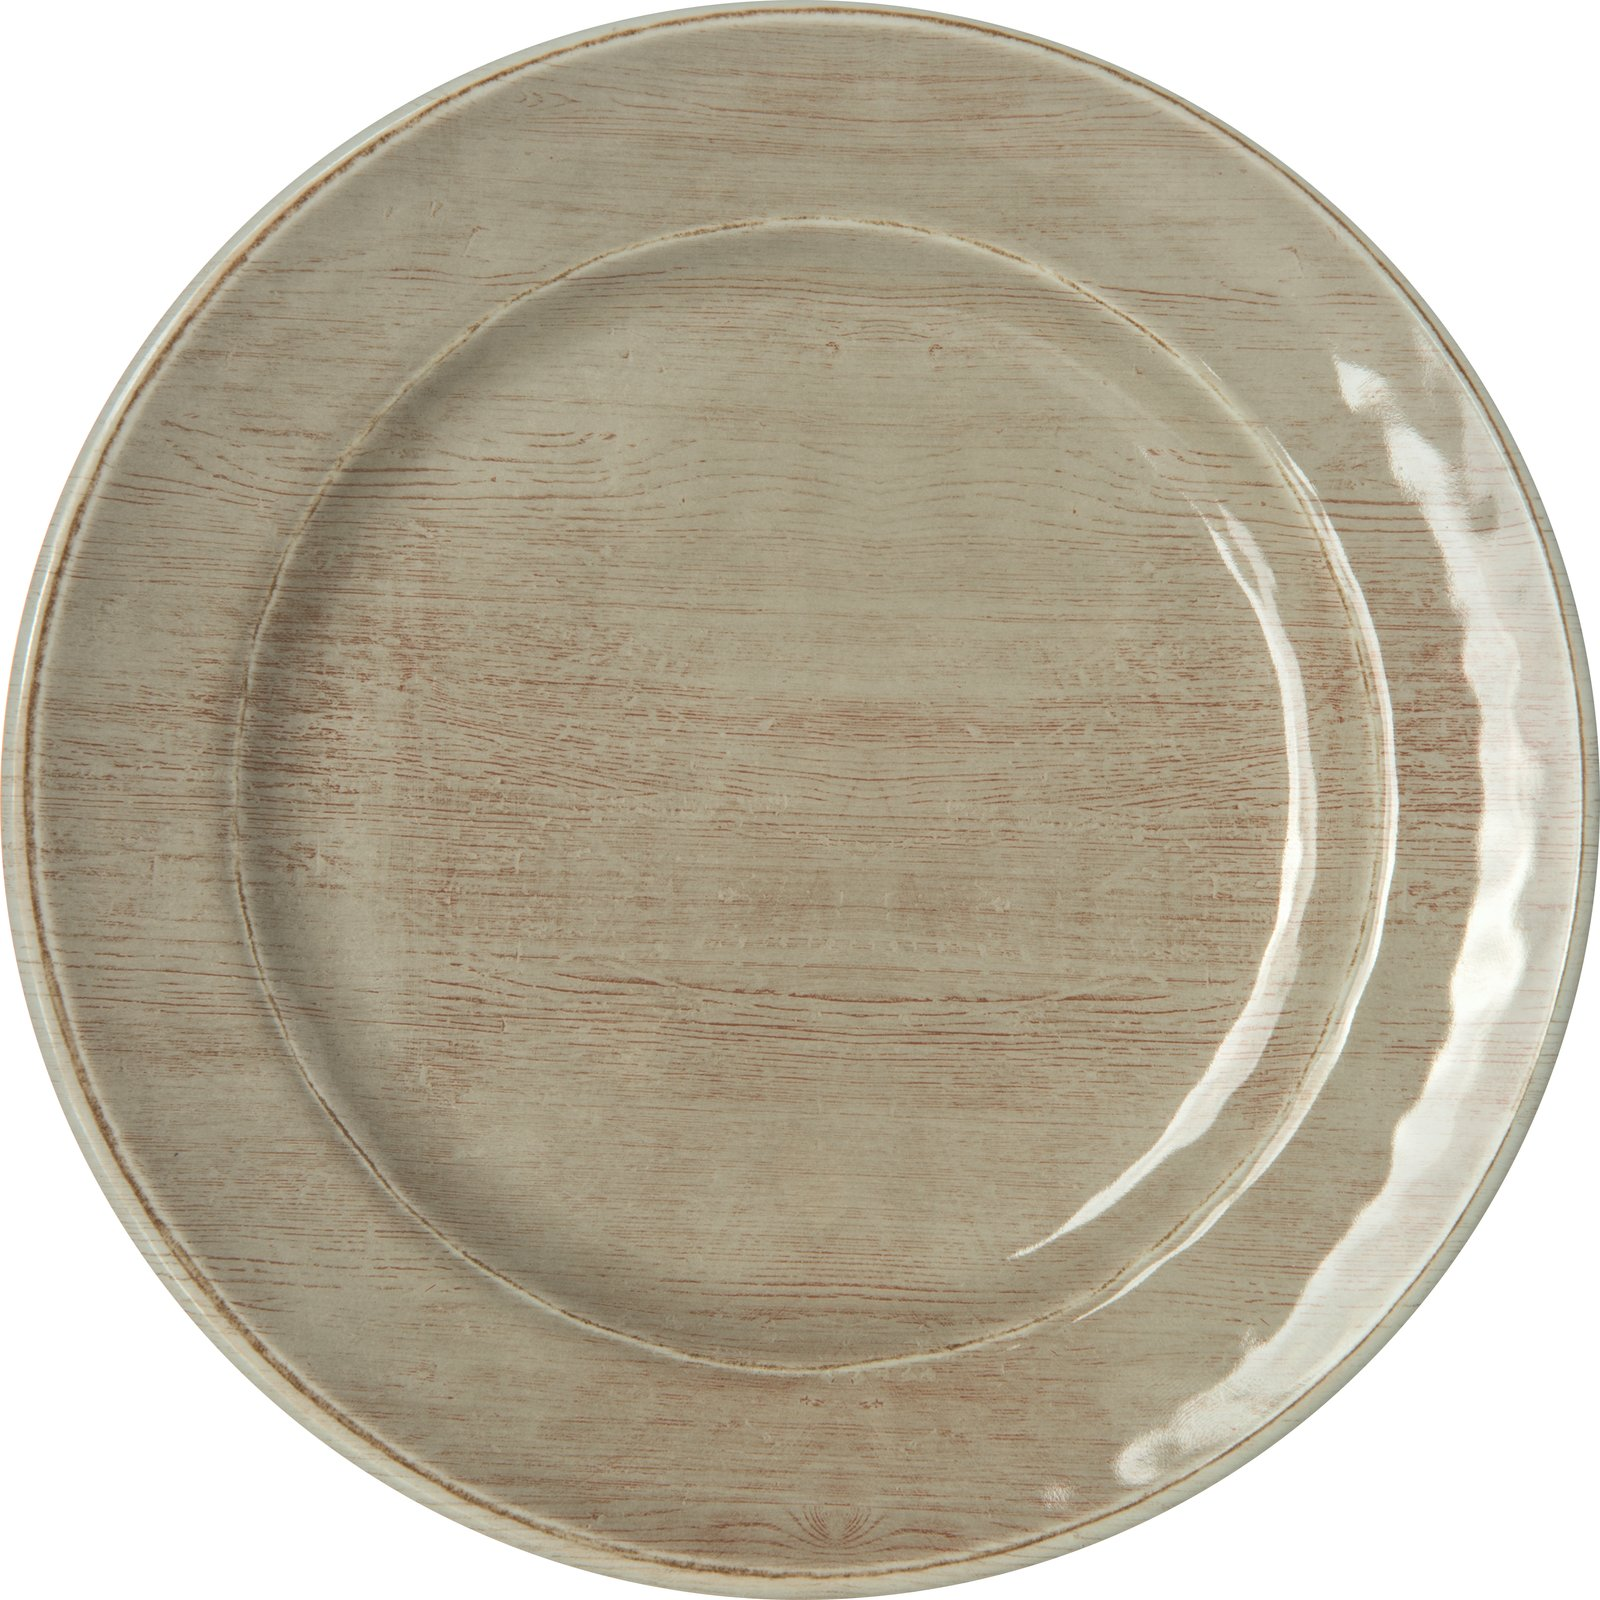 ... 6400770 - Grove Melamine Bread And Butter Plate 7\  - Adobe  sc 1 st  Carlisle FoodService Products & 6400770 - Grove Melamine Bread And Butter Plate 7\